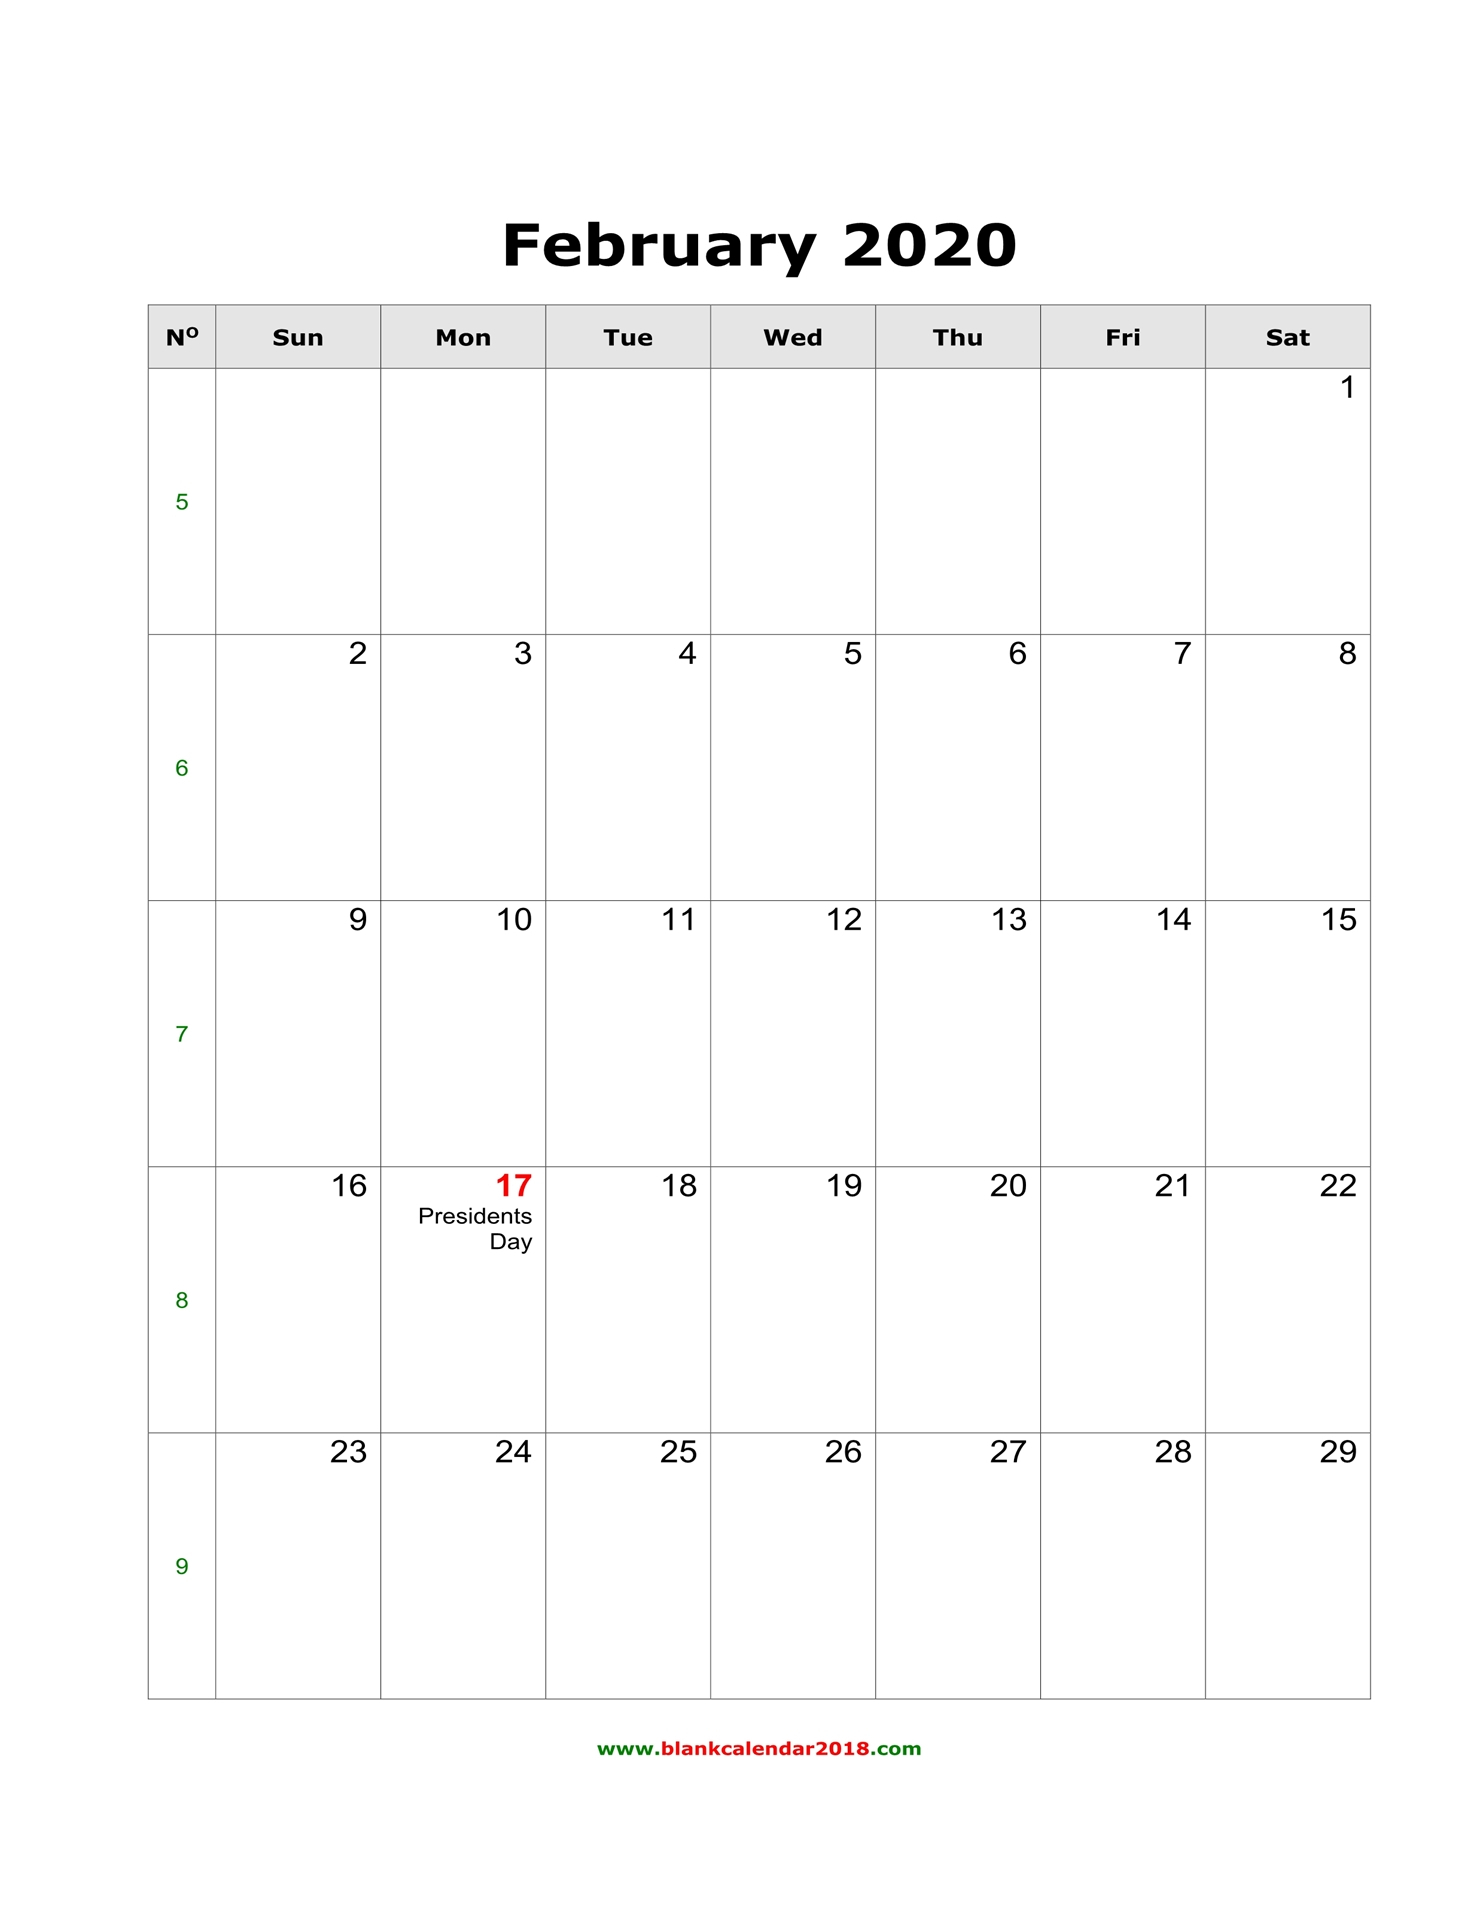 Blank Calendar For February 2020 pertaining to Wincalendar July 2020